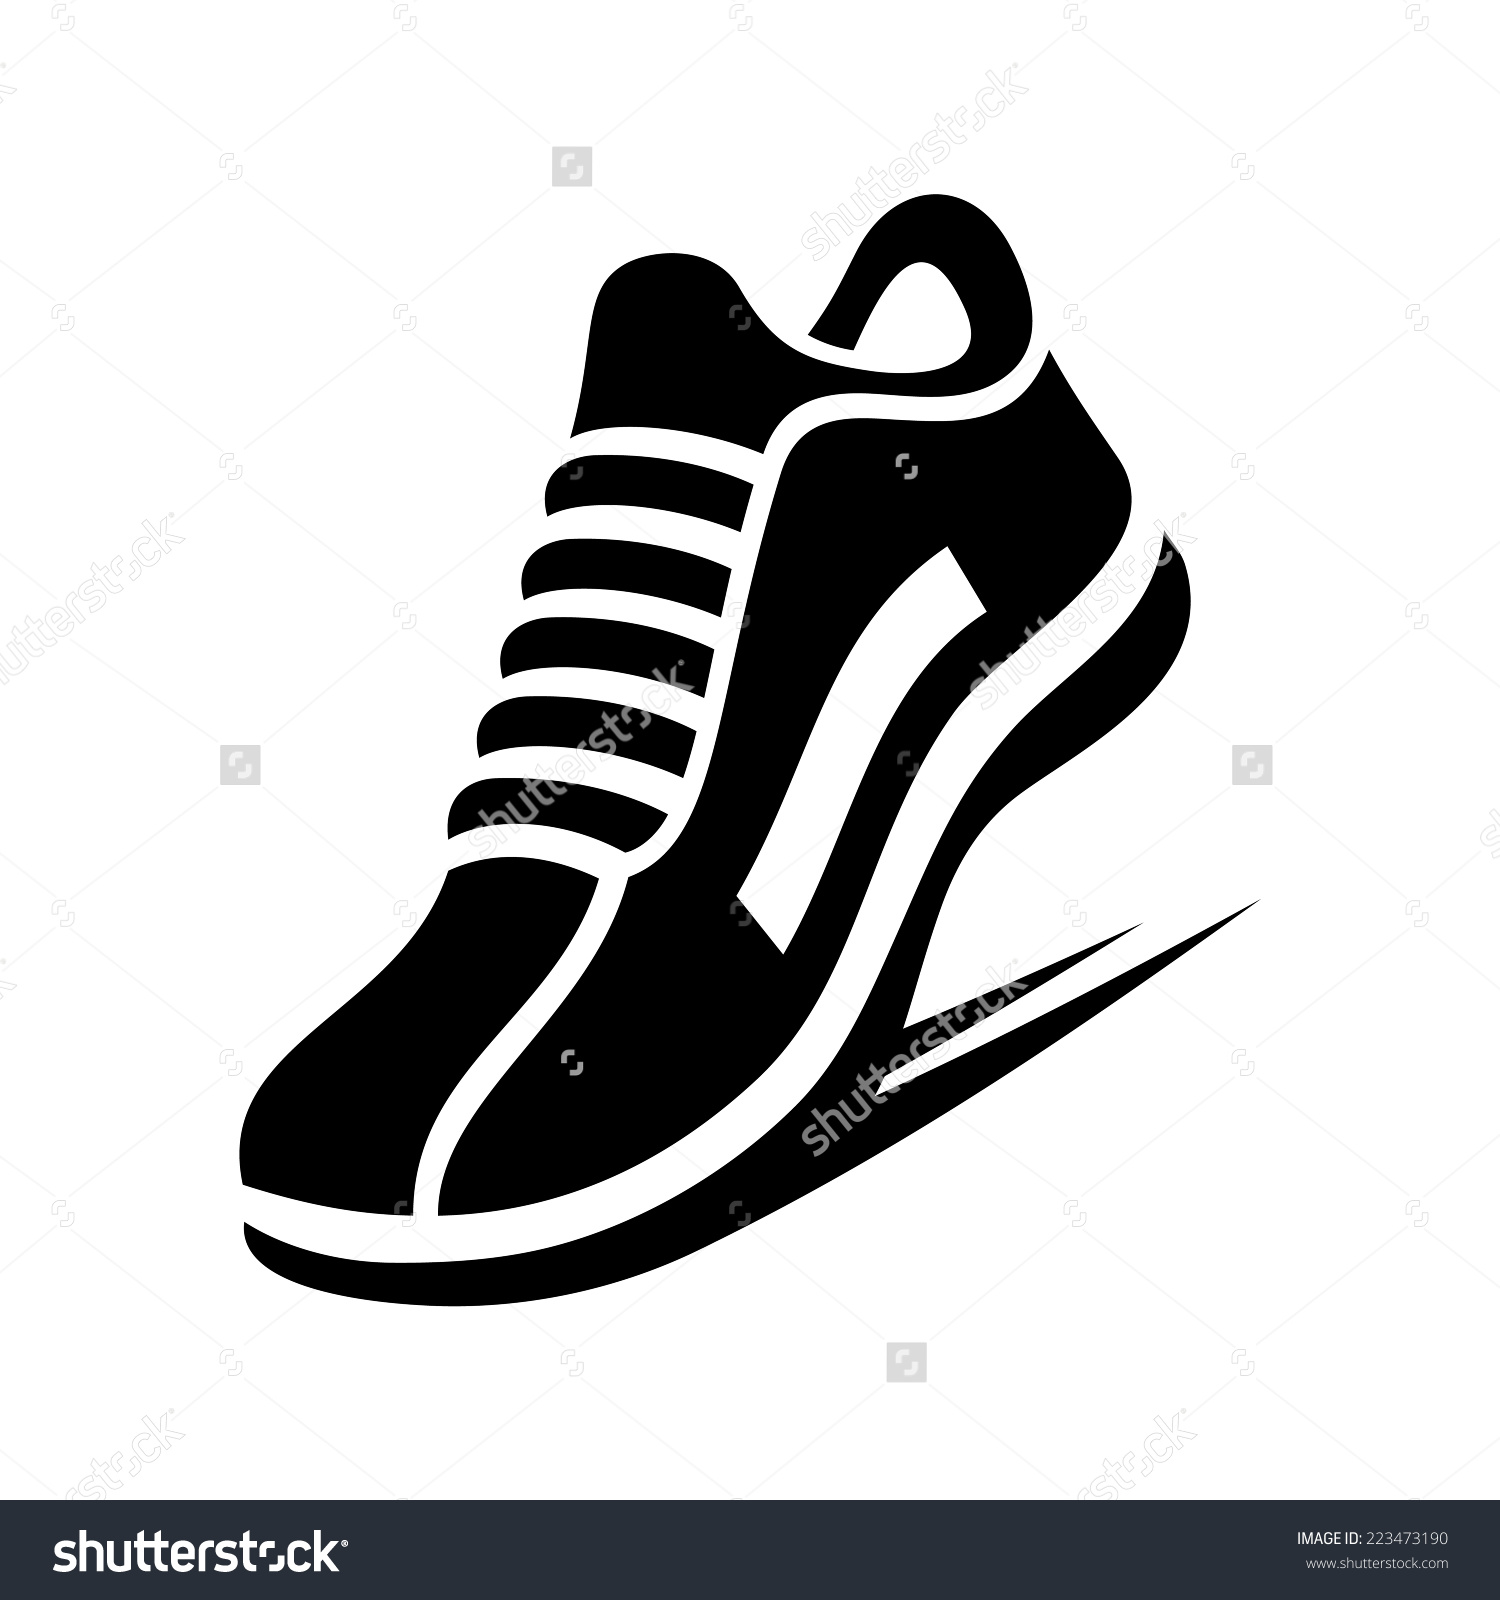 boot print clipart no background #8